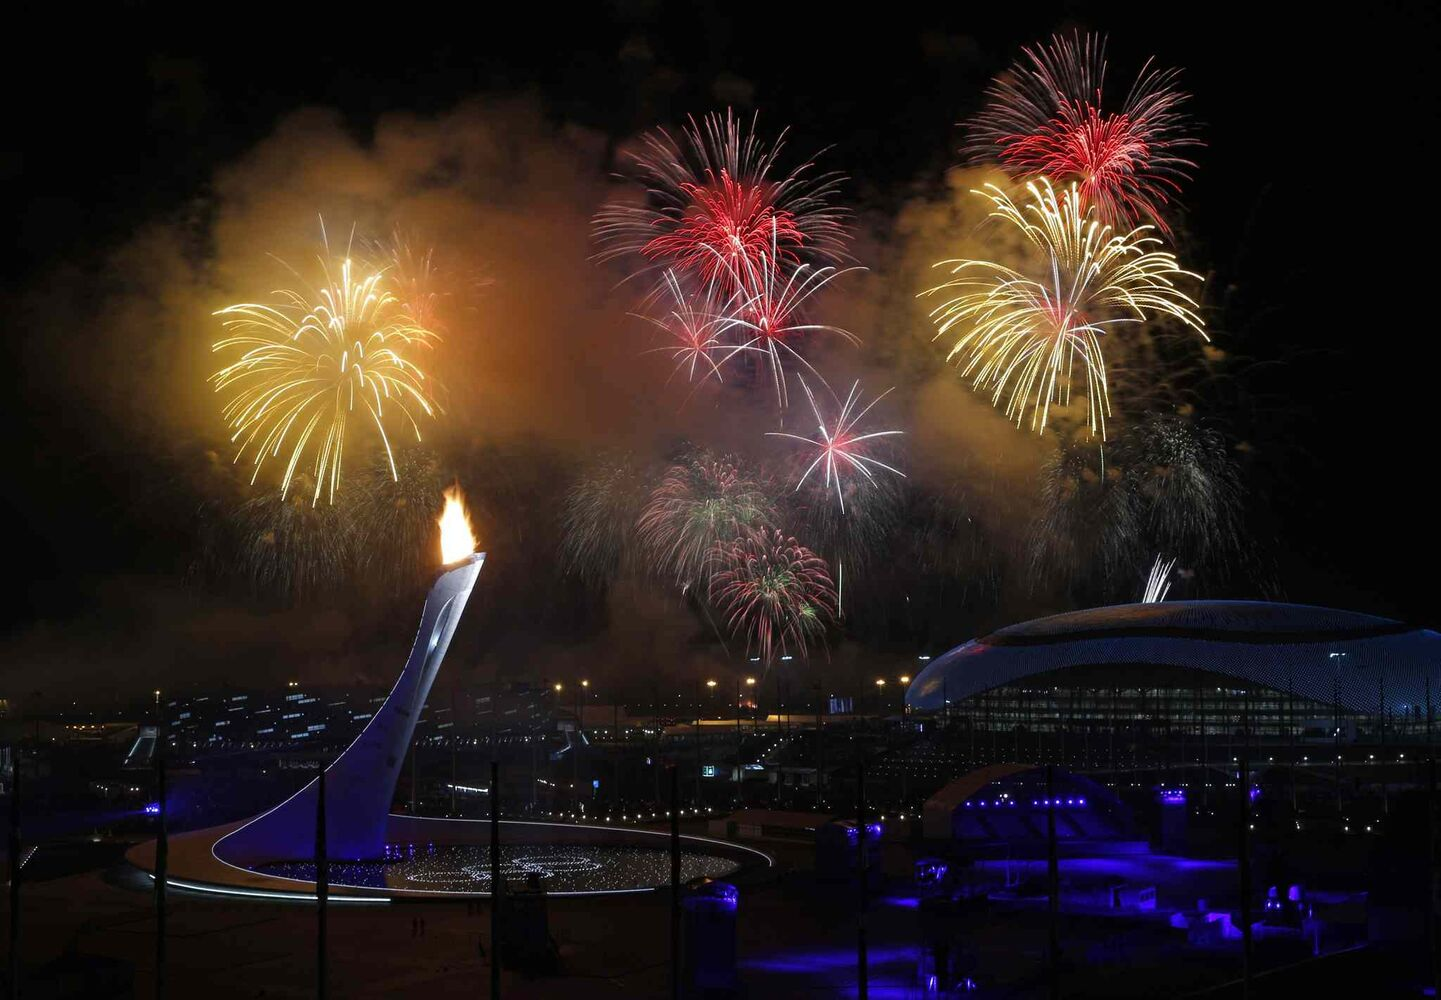 Fireworks are seen over the Olympic Cauldron during the opening ceremony of the 2014 Winter Olympics in Sochi, Russia, Friday, Feb. 7, 2014. (AP Photo/Julio Cortez)